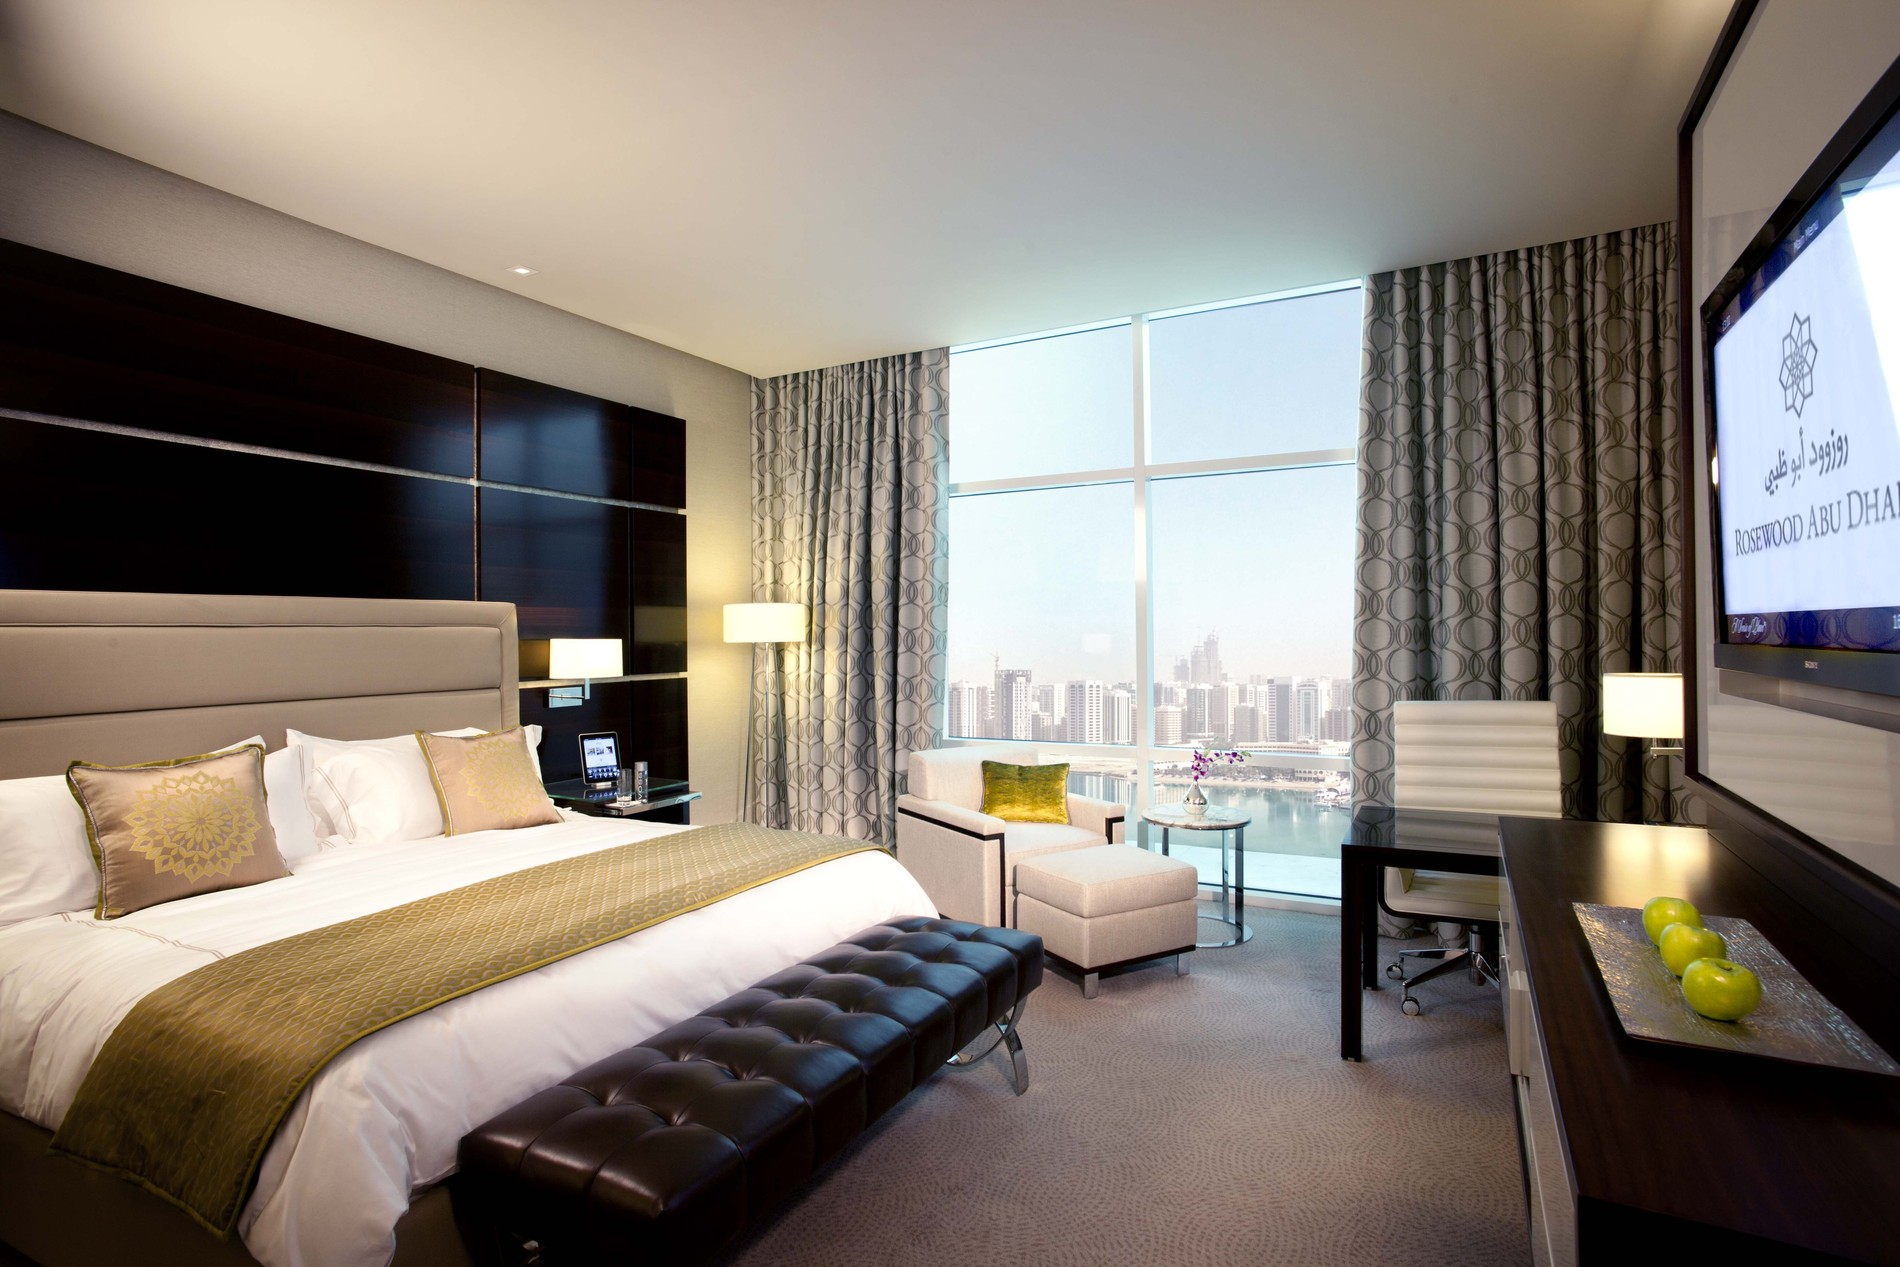 Rosewood abu dhabi opens doors to an ultra luxury lifestyle experience on may 1 2013